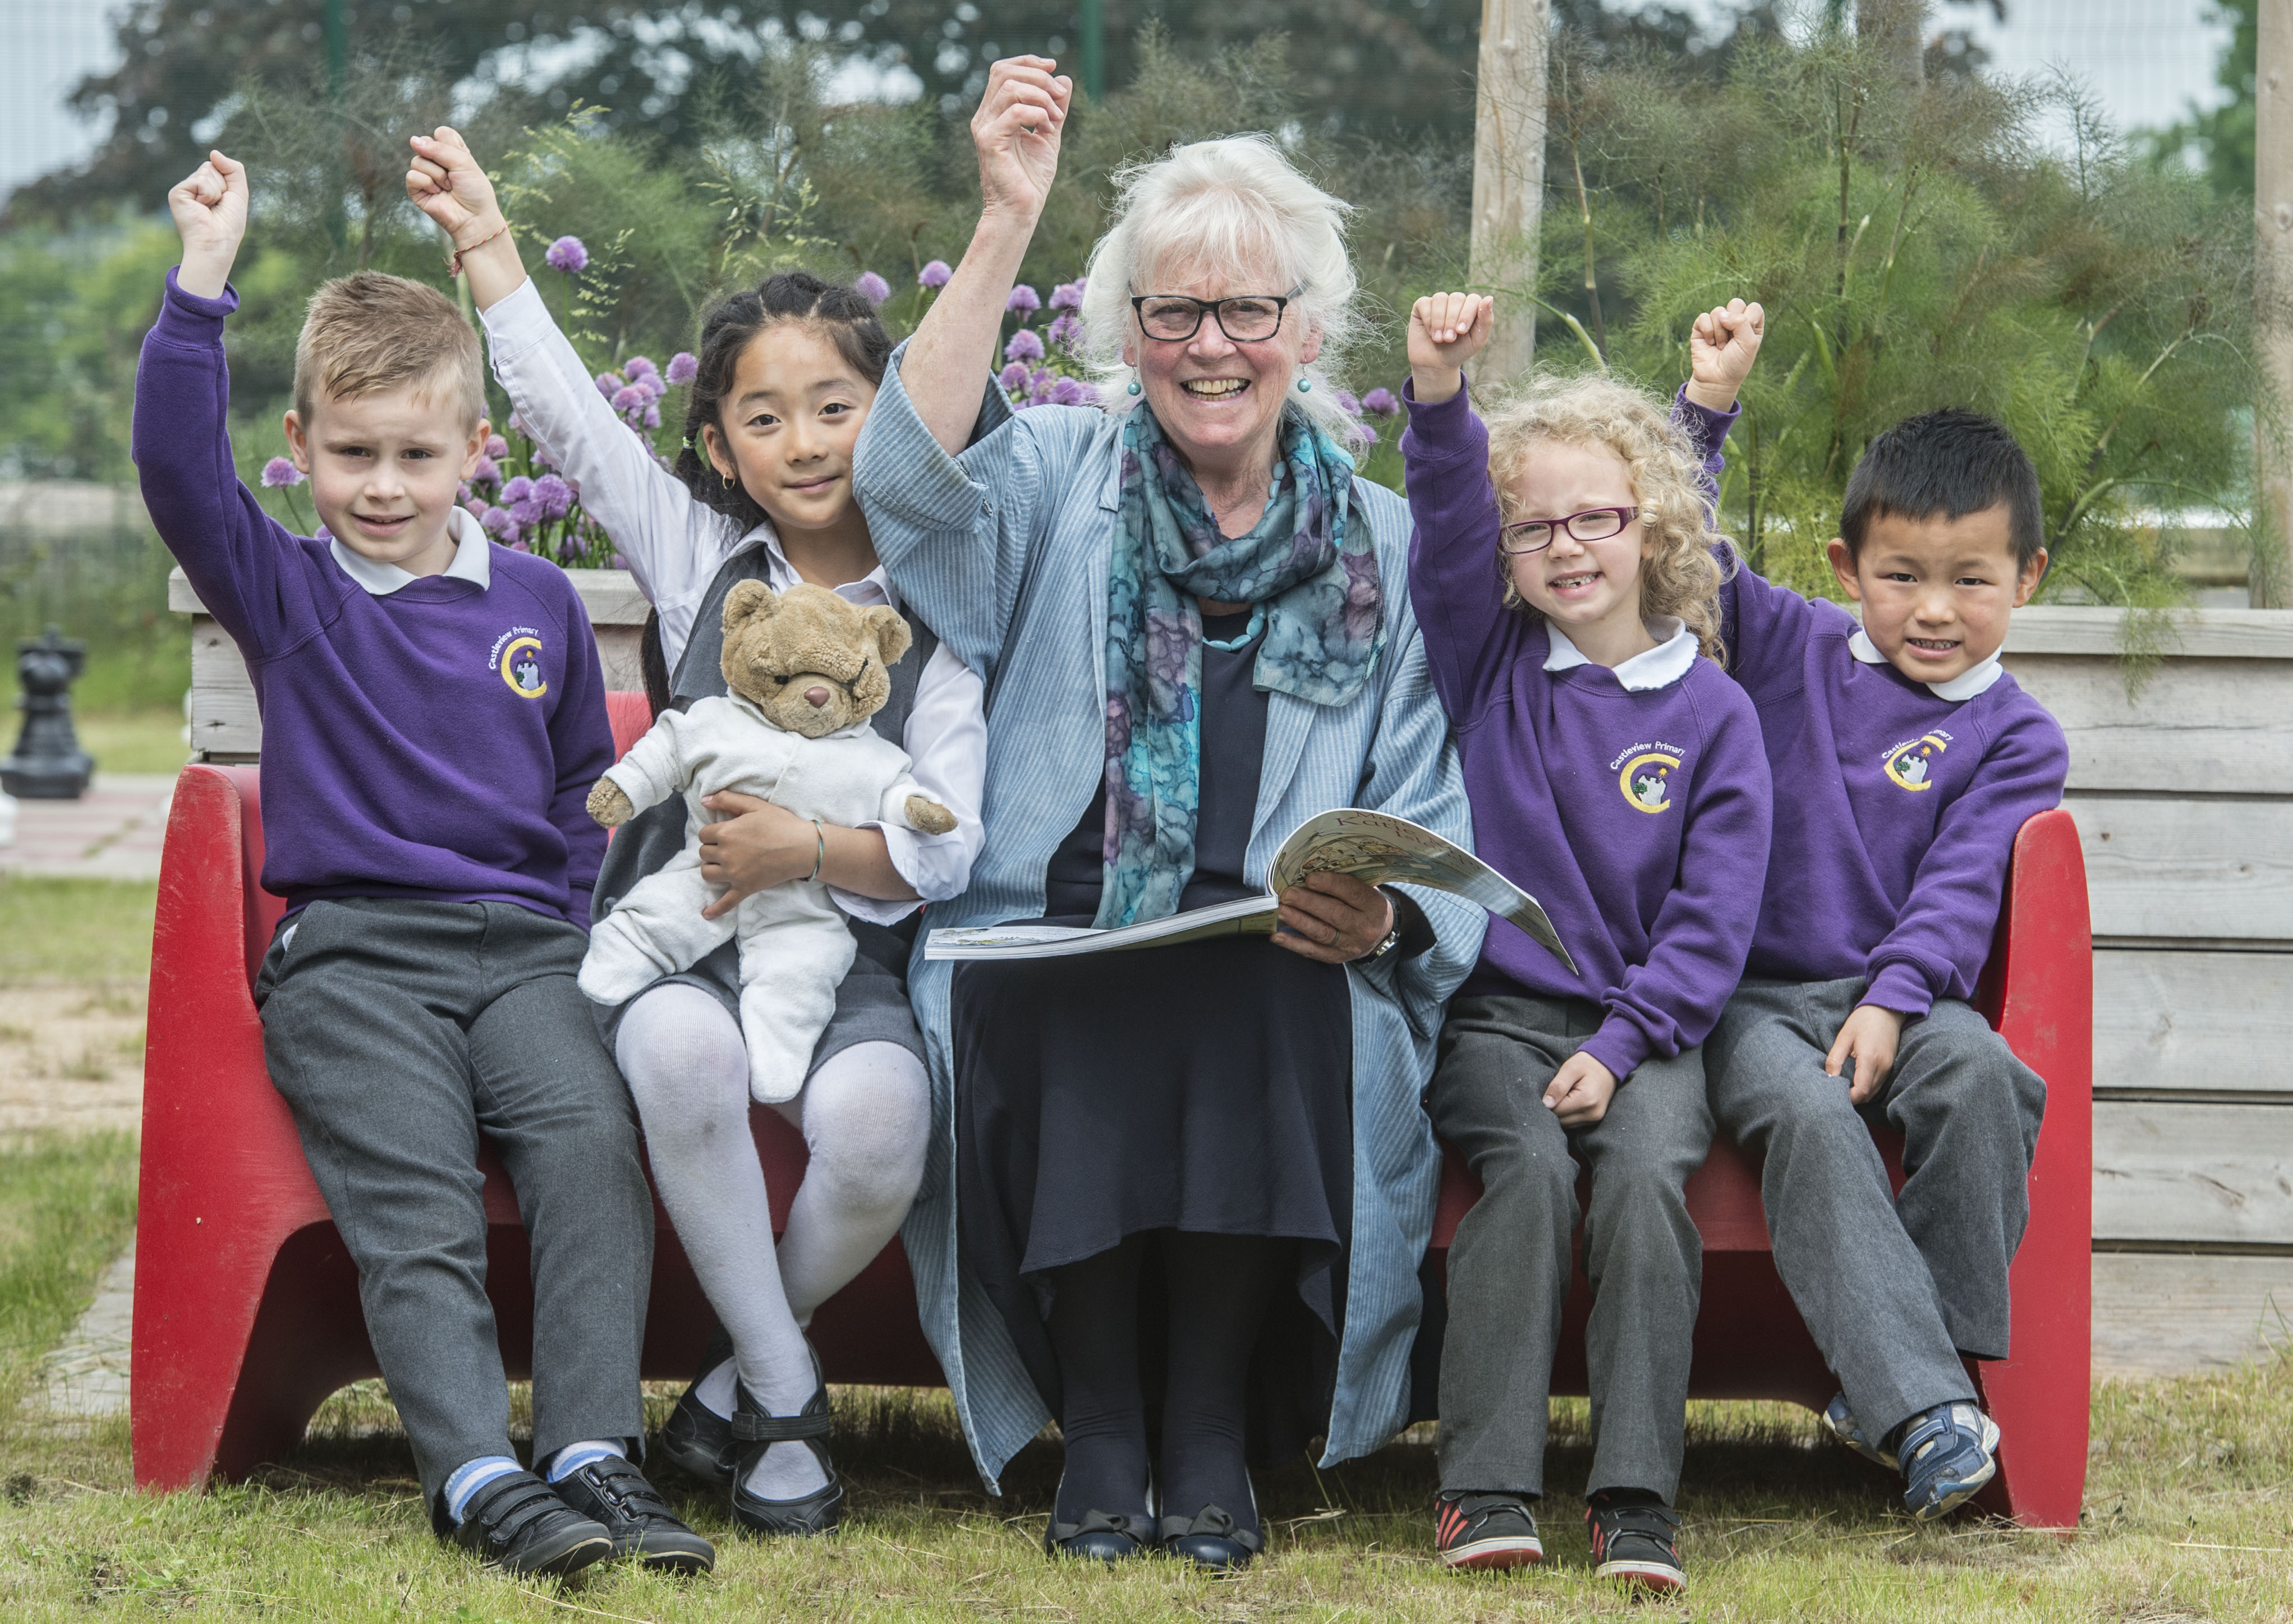 Mairi Hedderwick, author of Katie Morag Stories, reading to the children from one of her books to celebrate the launch of the Summer Reading Challenge. PIC PHIL WILKINSON